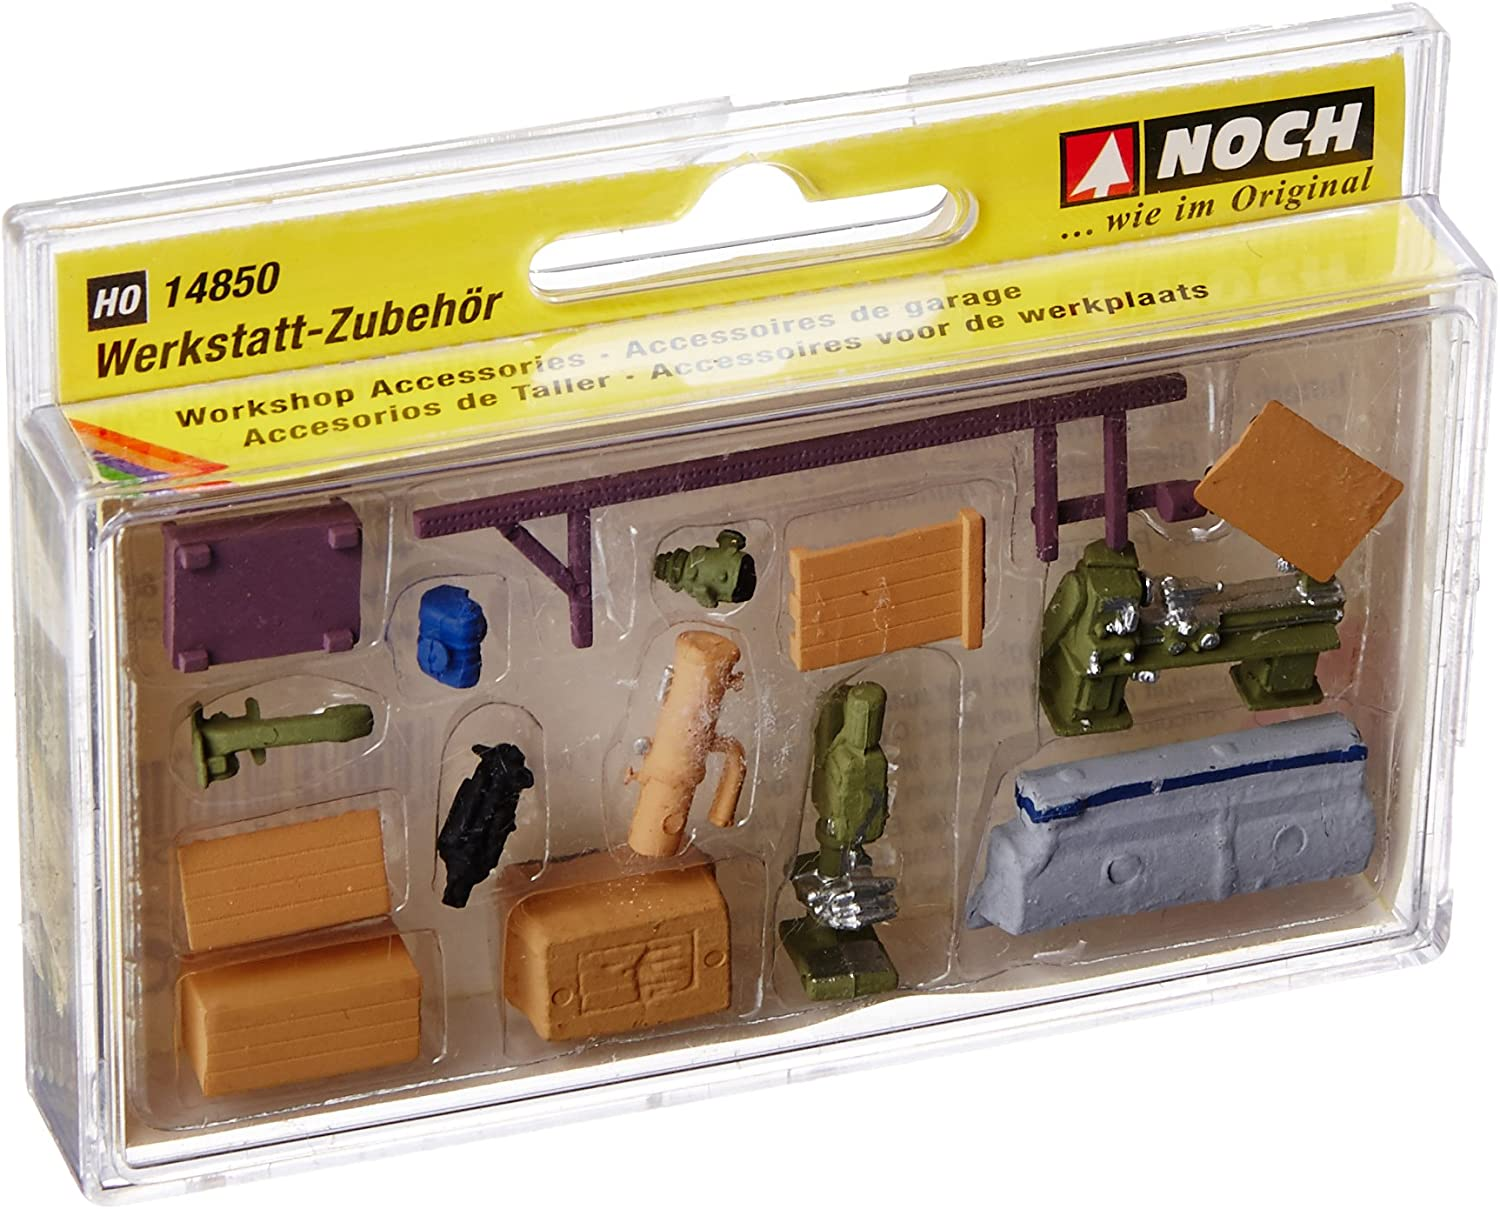 Noch 14850 Workshop Accessories H0 Scale Model Kit